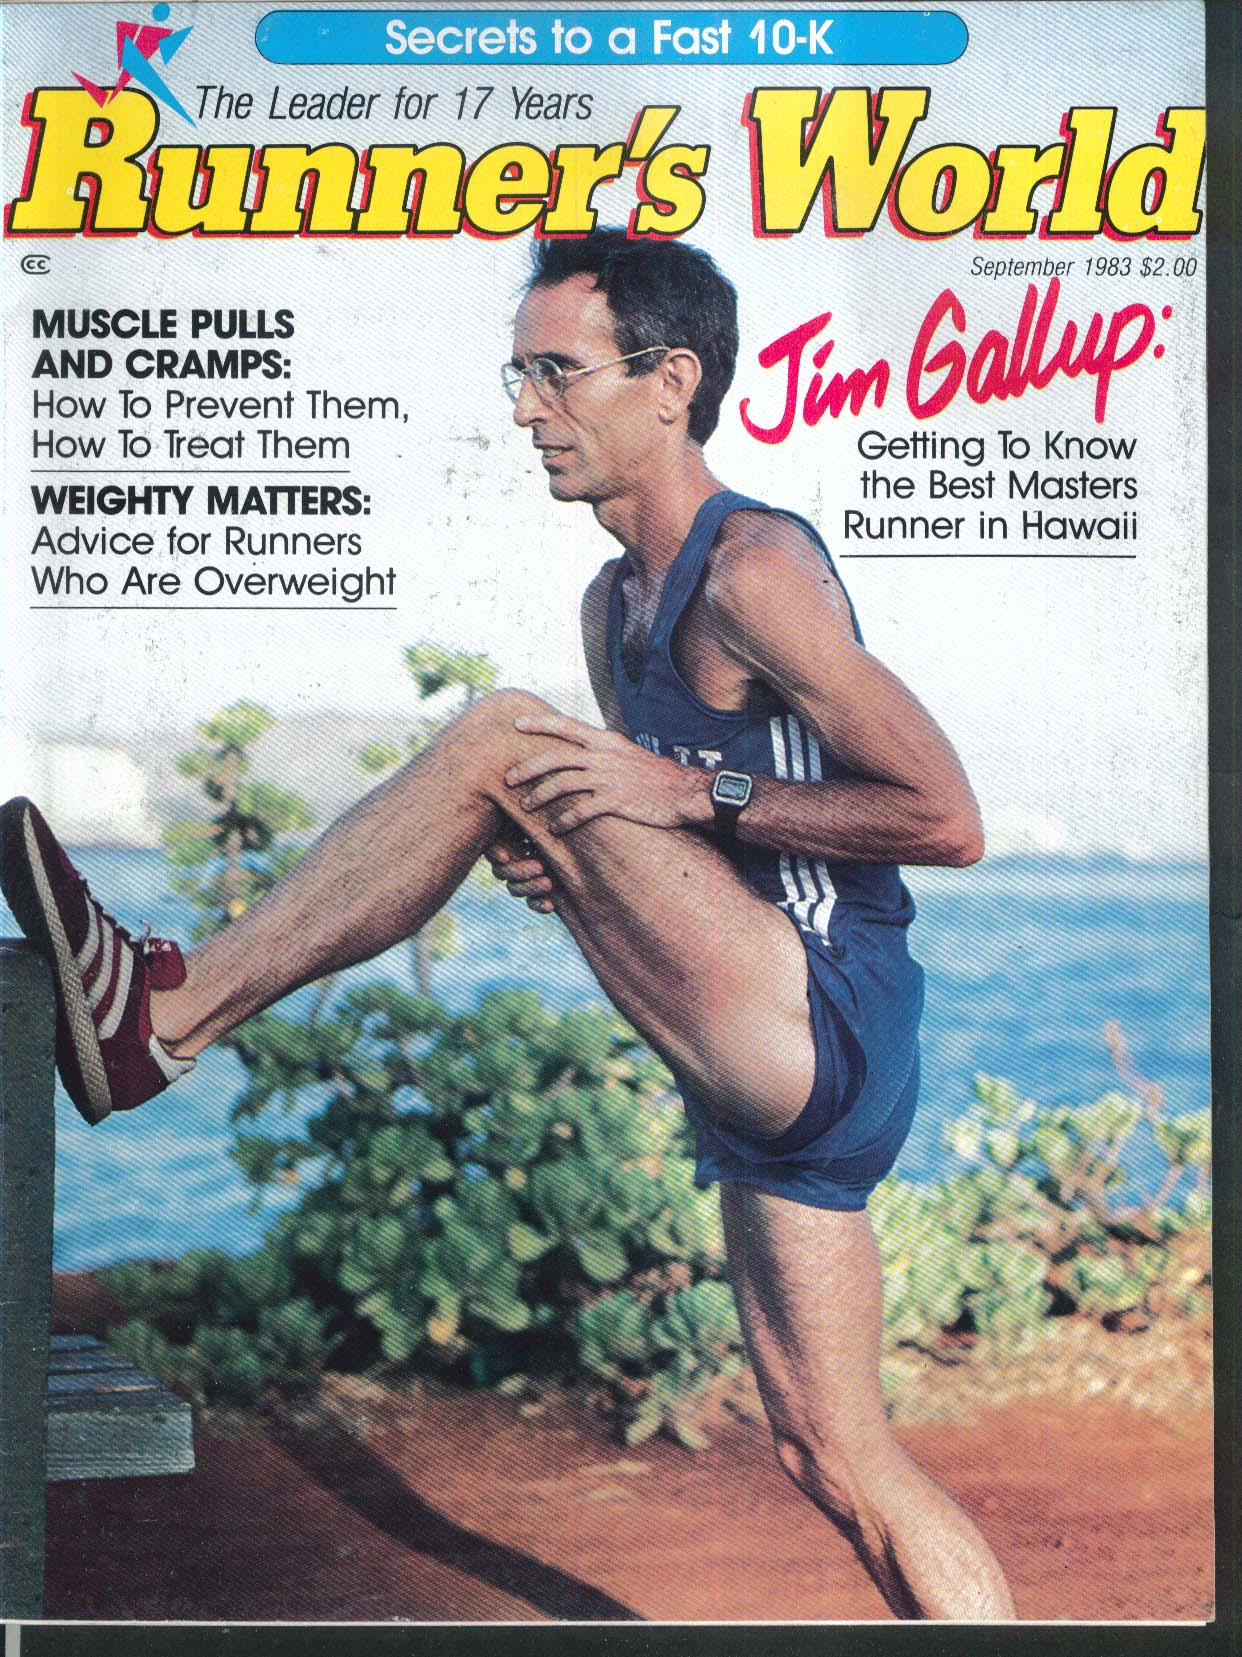 RUNNER'S WORLD Jim Gallup 10K Training Stephani Shelton 9 1983